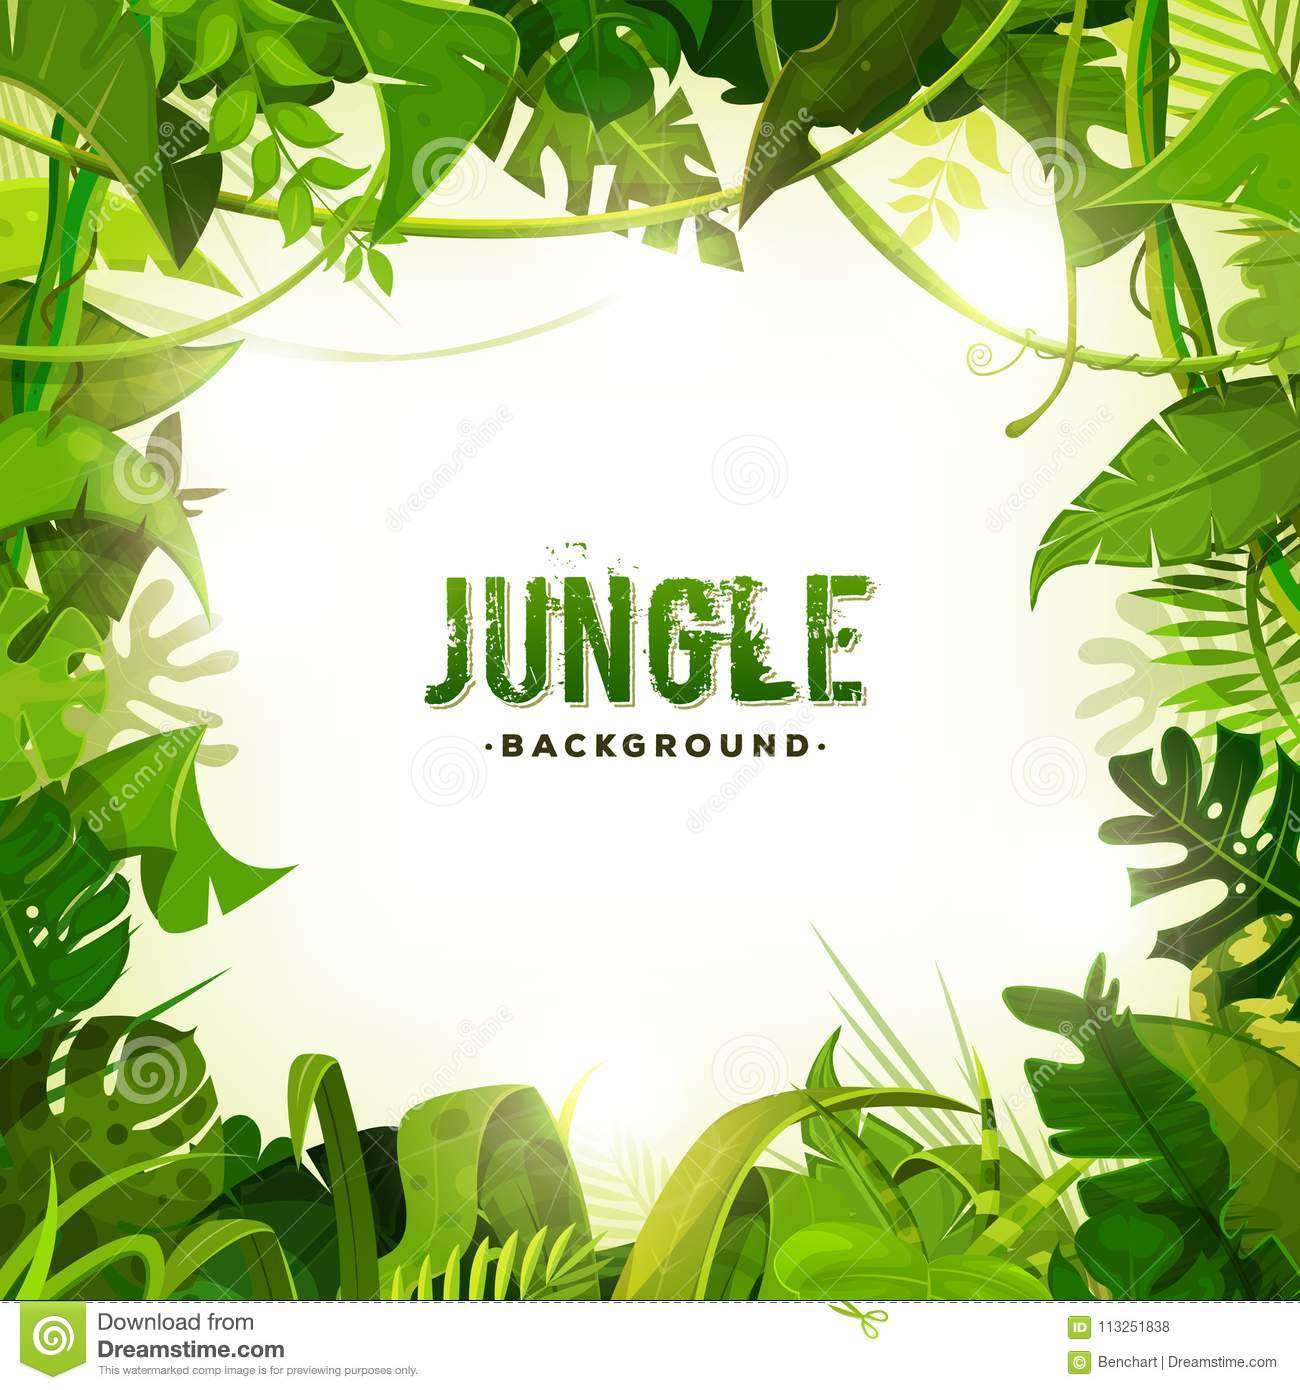 Jungle Tropical Decoration Background Stock Vector - Illustration of on